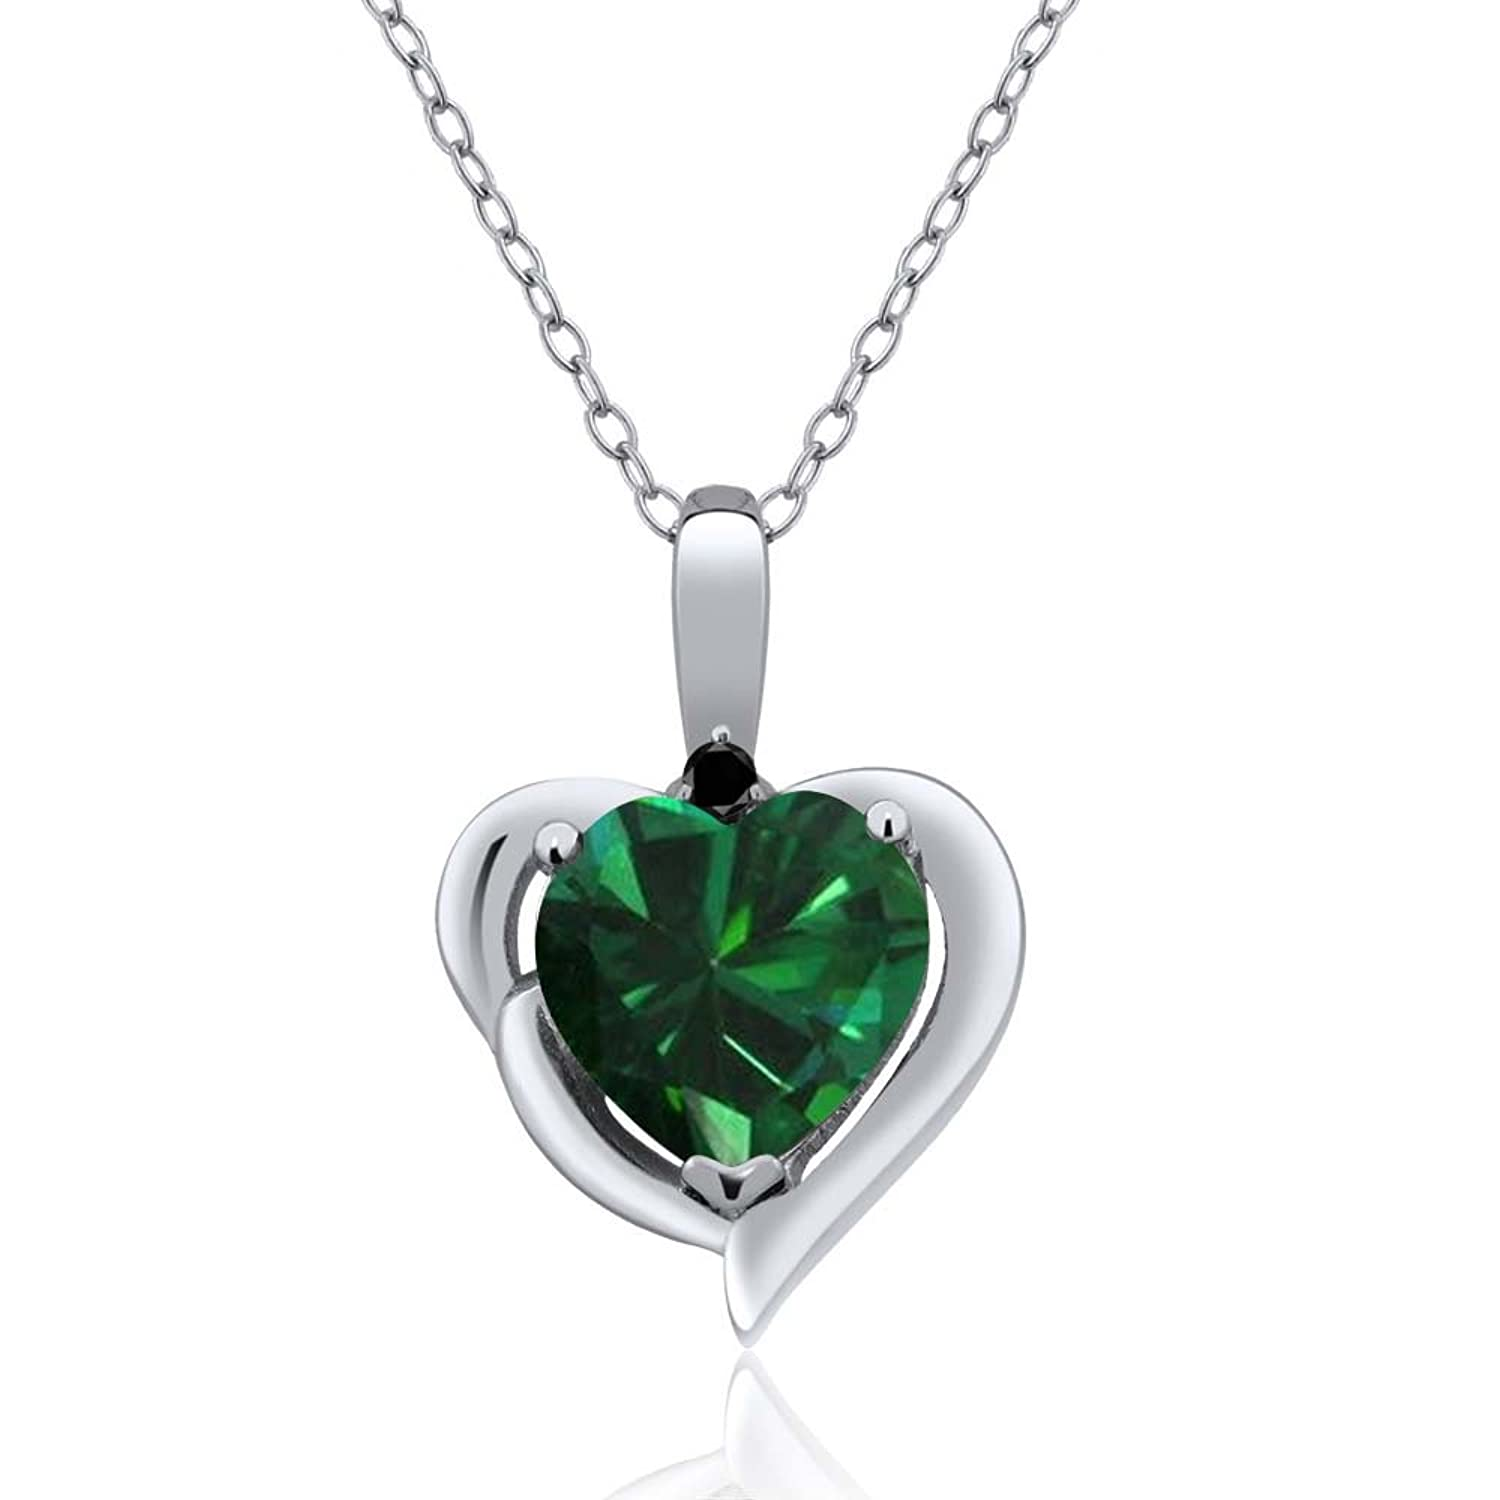 1.52 Ct Heart Shape Green Simulated Emerald and Black Diamond 925 Sterling Silver Women's Pendant with 18 Inch Silver Chain